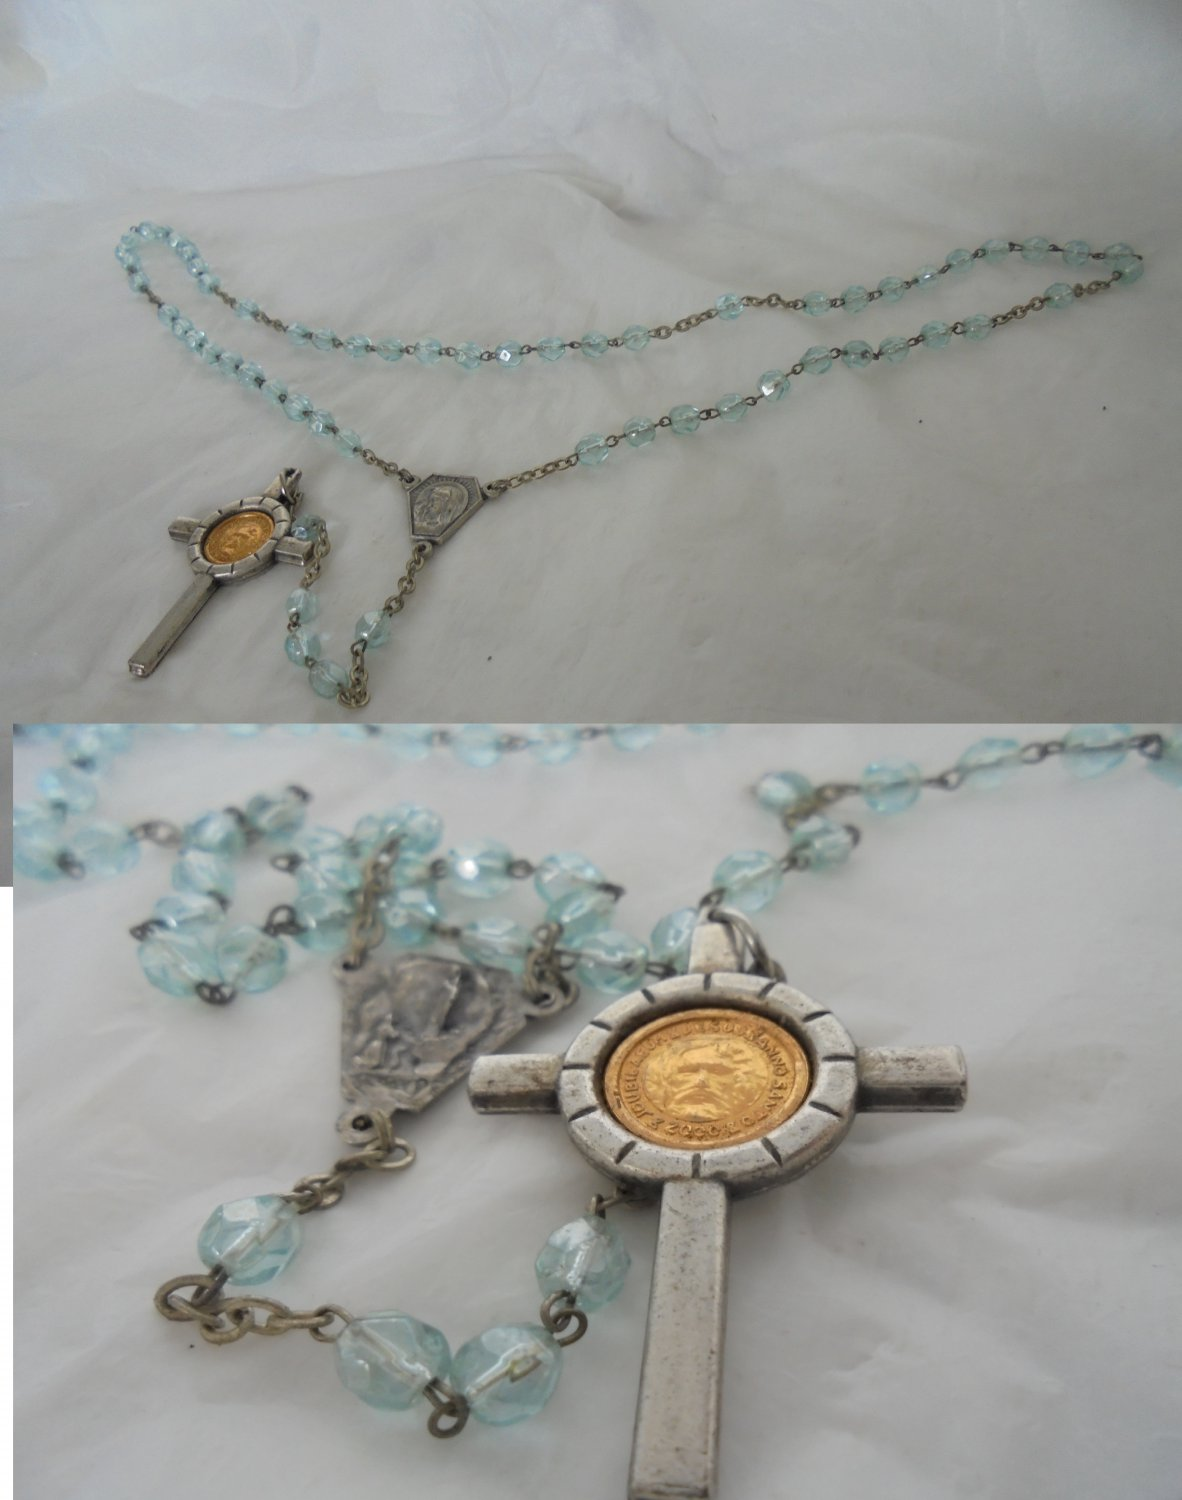 Praying ROSARY NECKLACE Jubilee 2000 Original Rome Italy